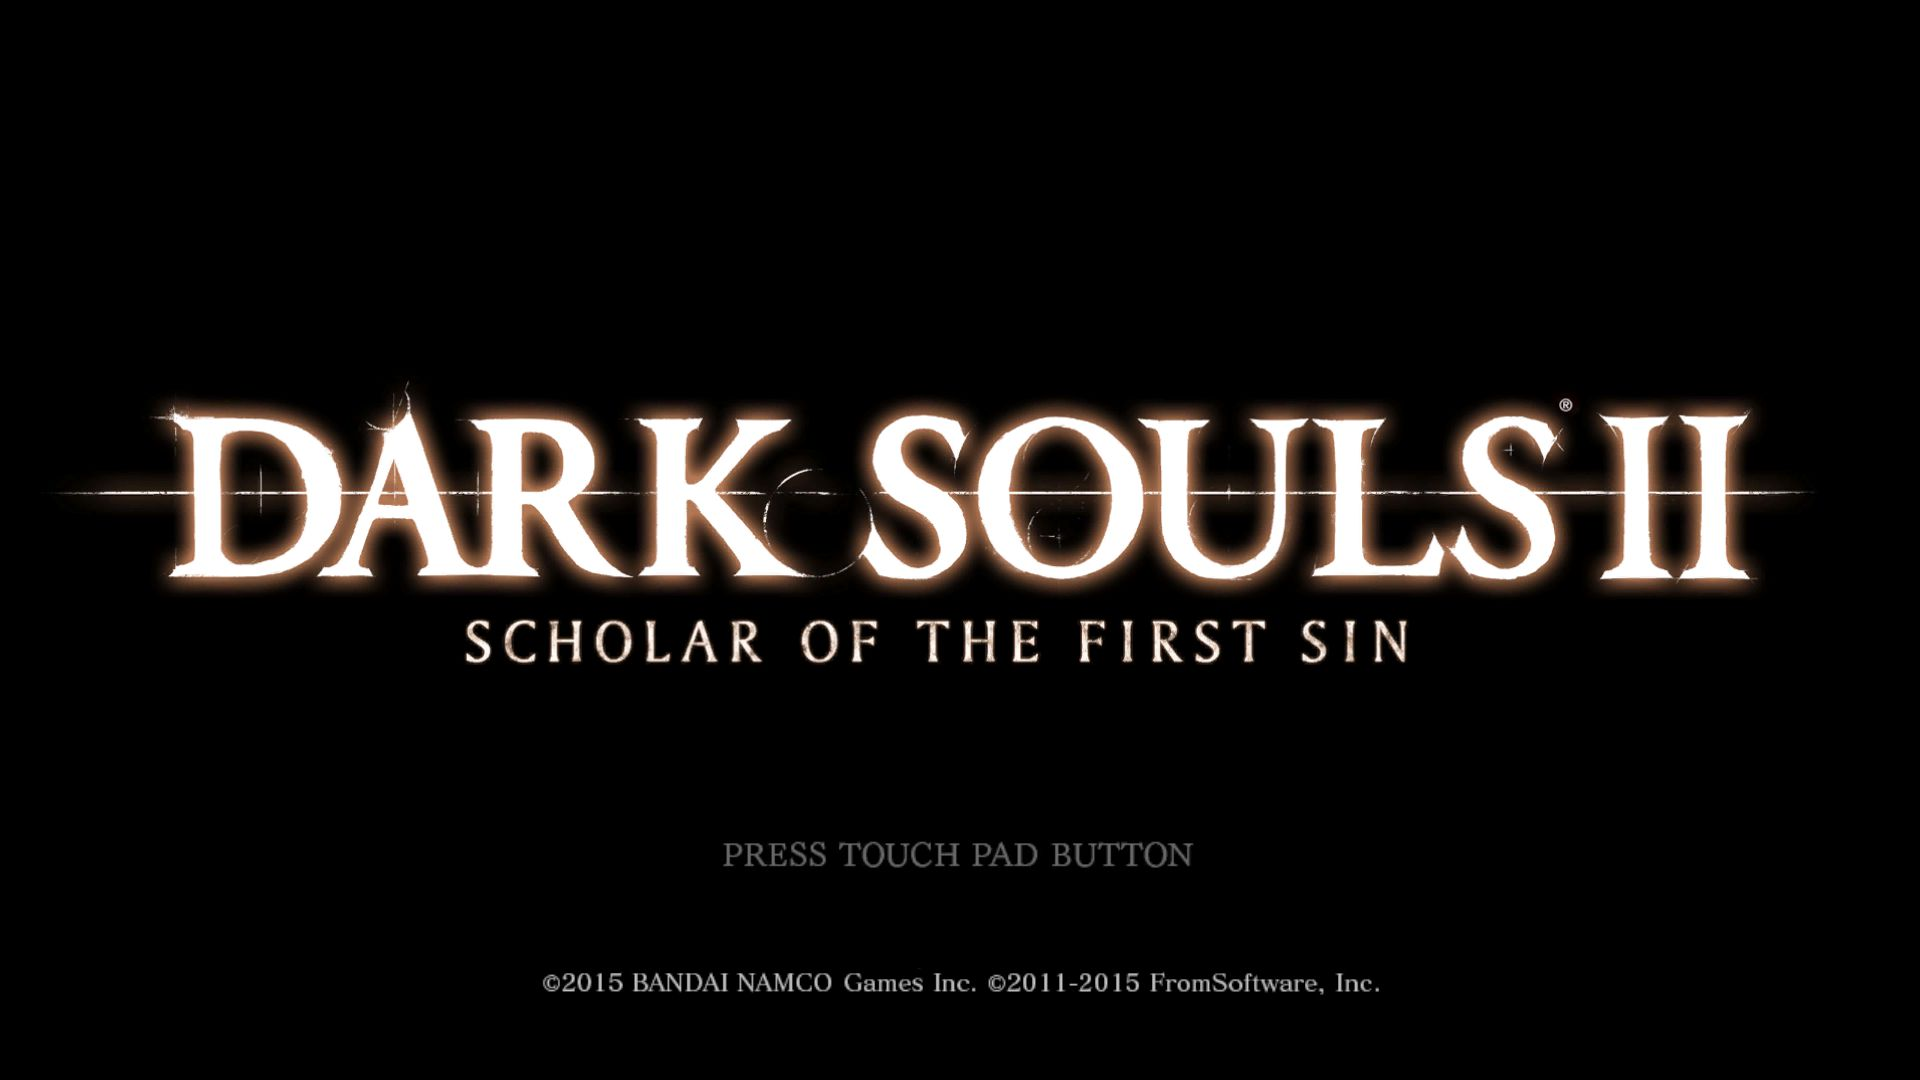 DARK SOULS Ⅱ SCHOLAR OF THE FIRST SIN Vol.3